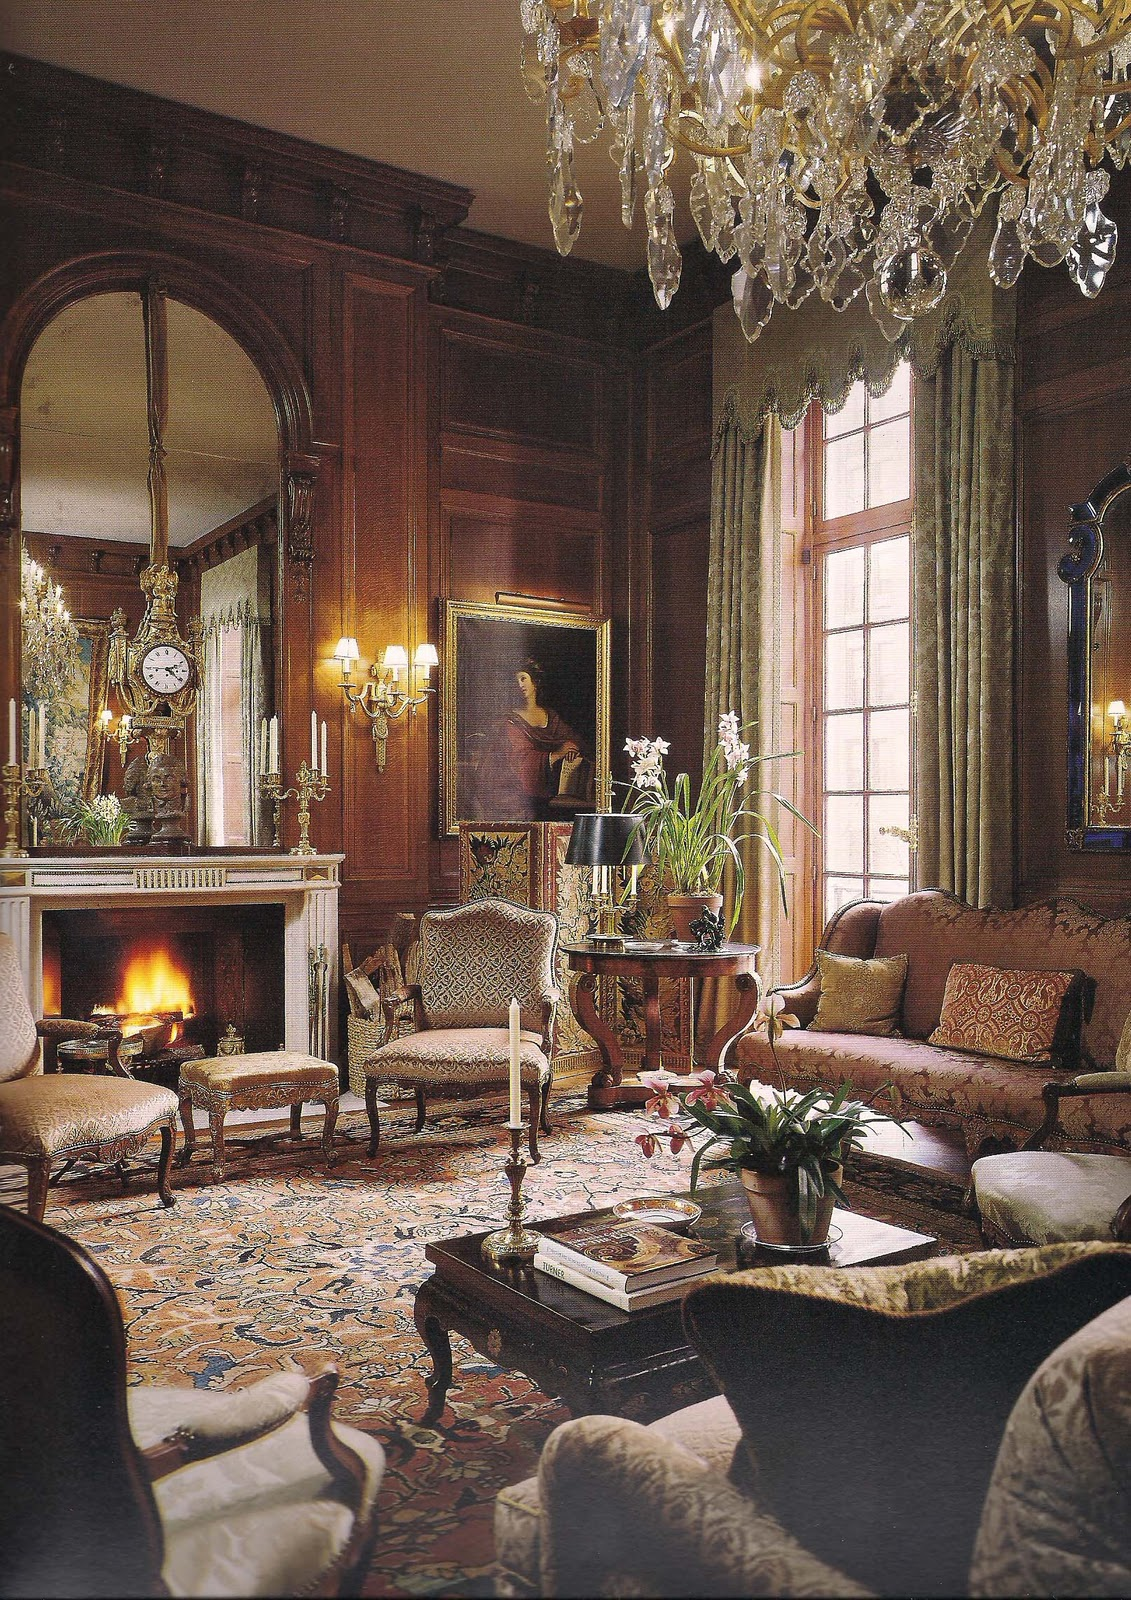 The devoted classicist a french kiss in manhattan 15 e - French country home interior ...